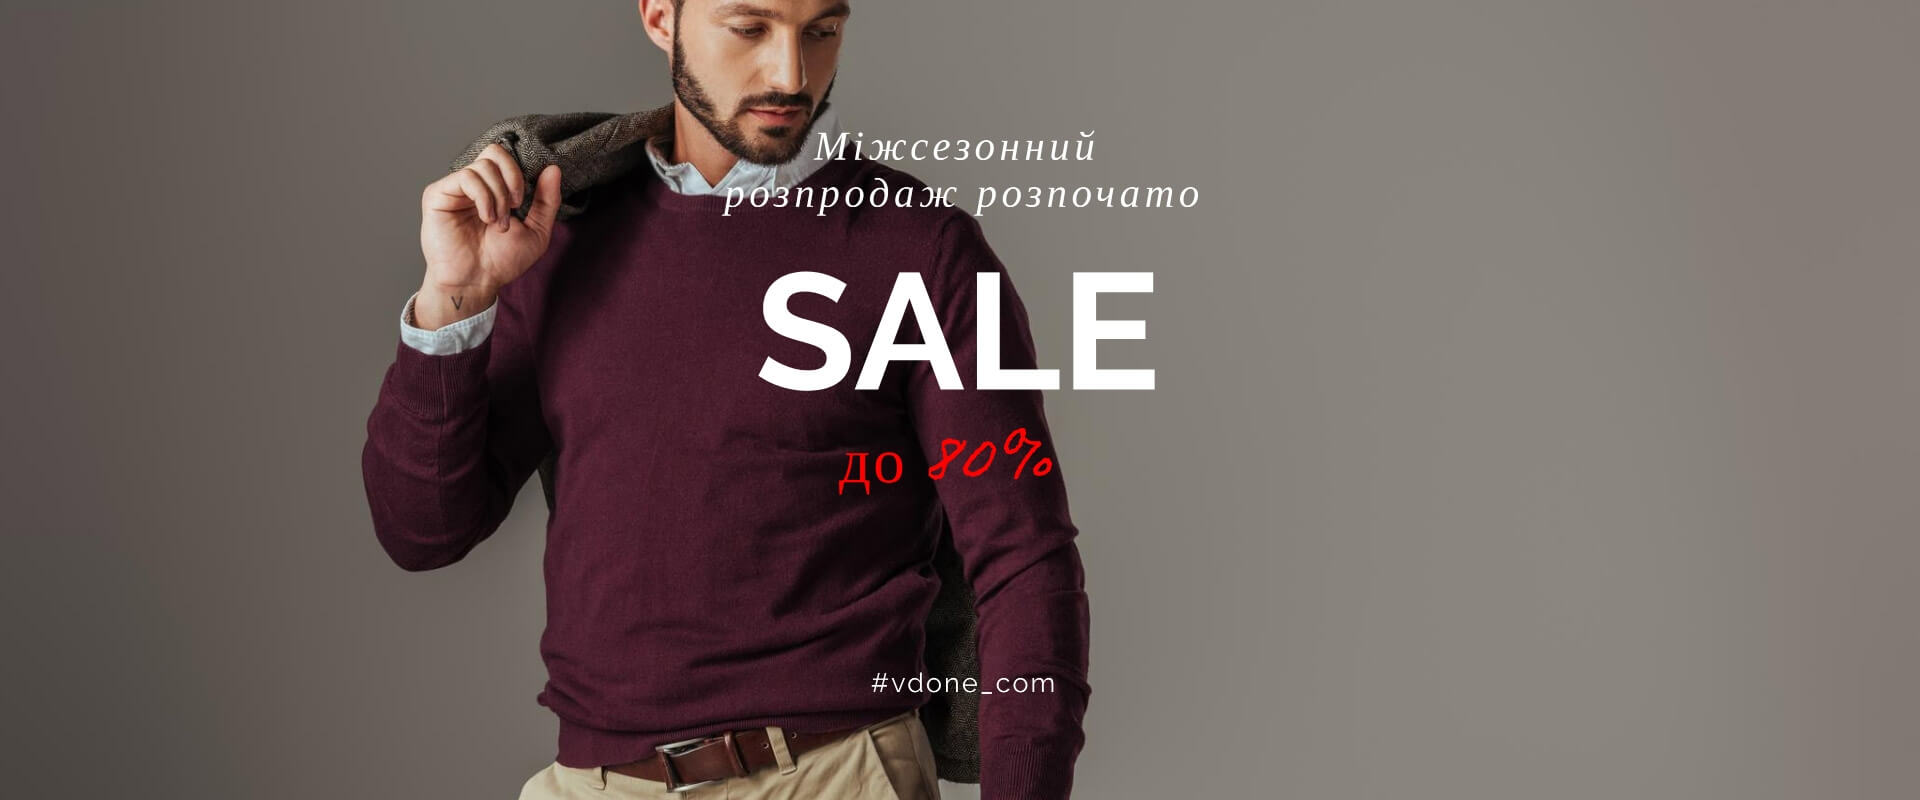 mid_season_sale_to_80